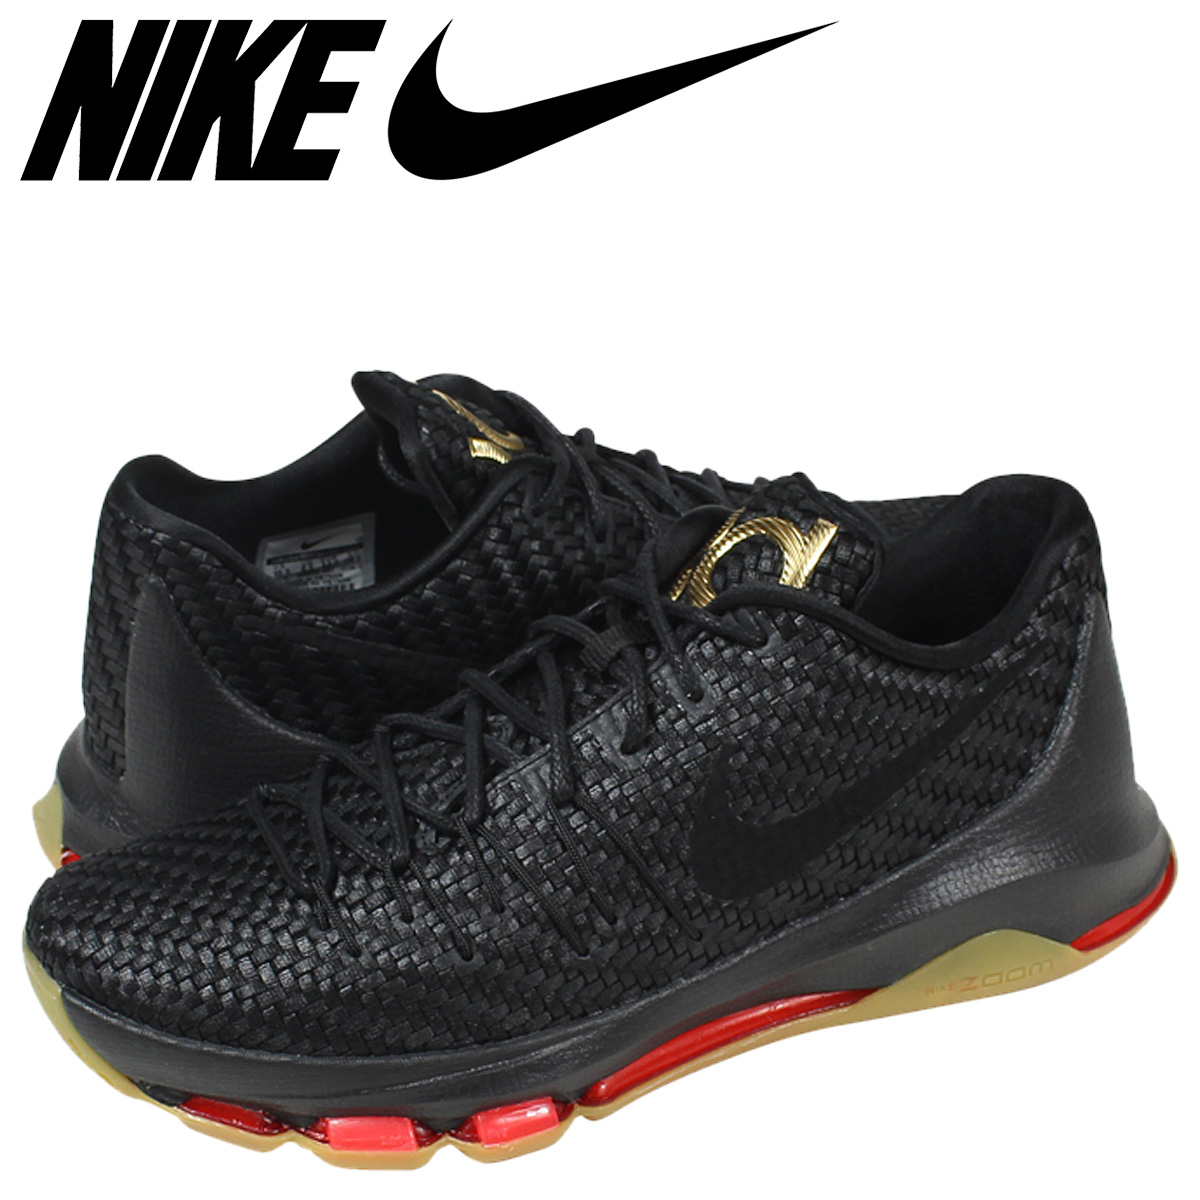 8762814300bc Whats up Sports  NIKE Nike sneakers KD 8 EXT 806393-001 black mens ...